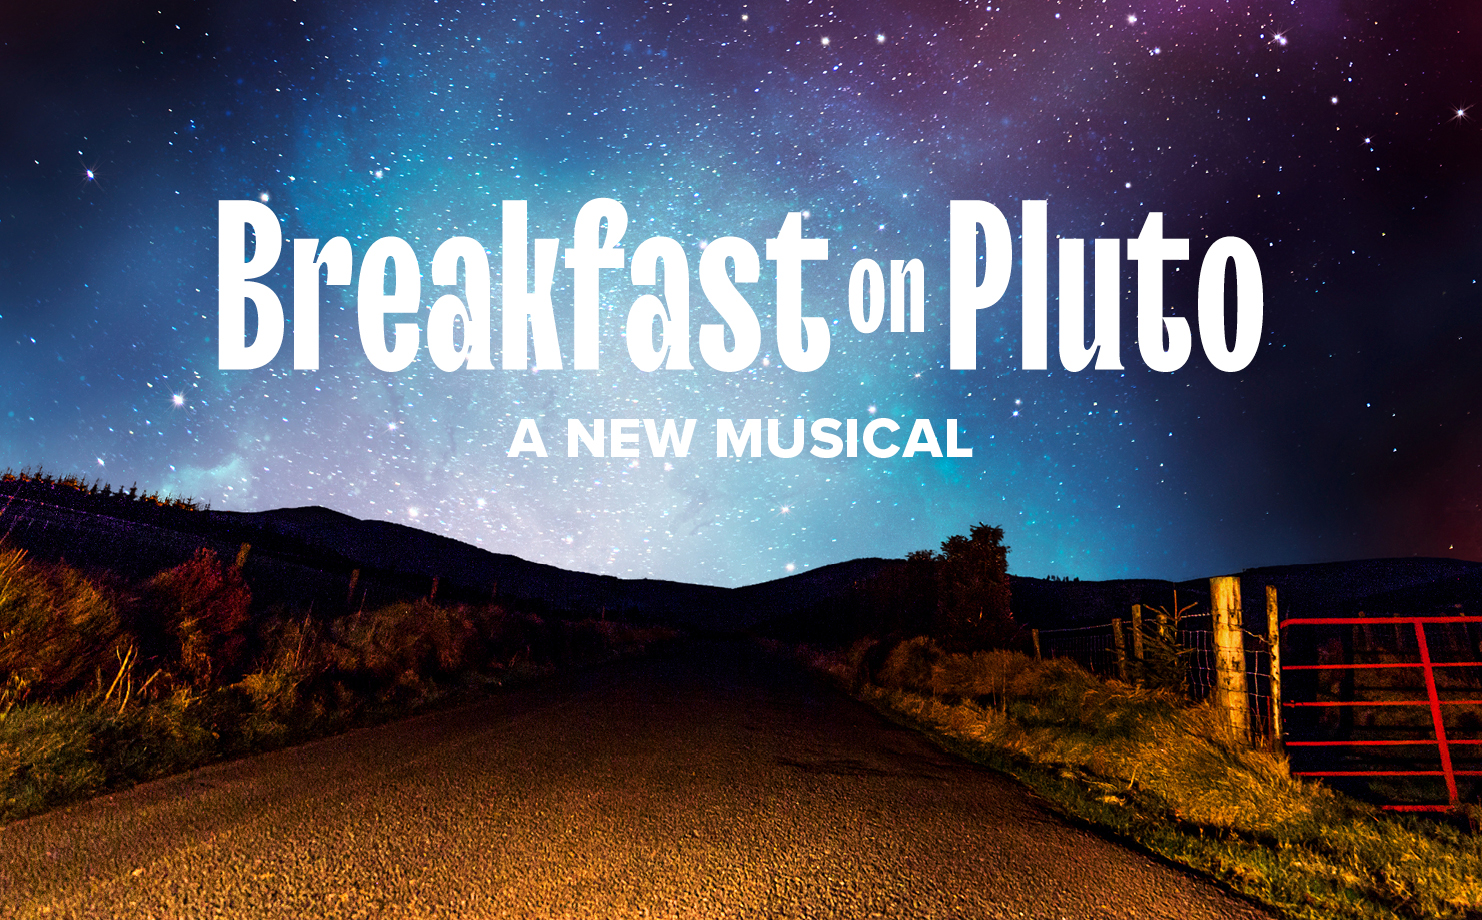 Breakfast on Pluto - the musical